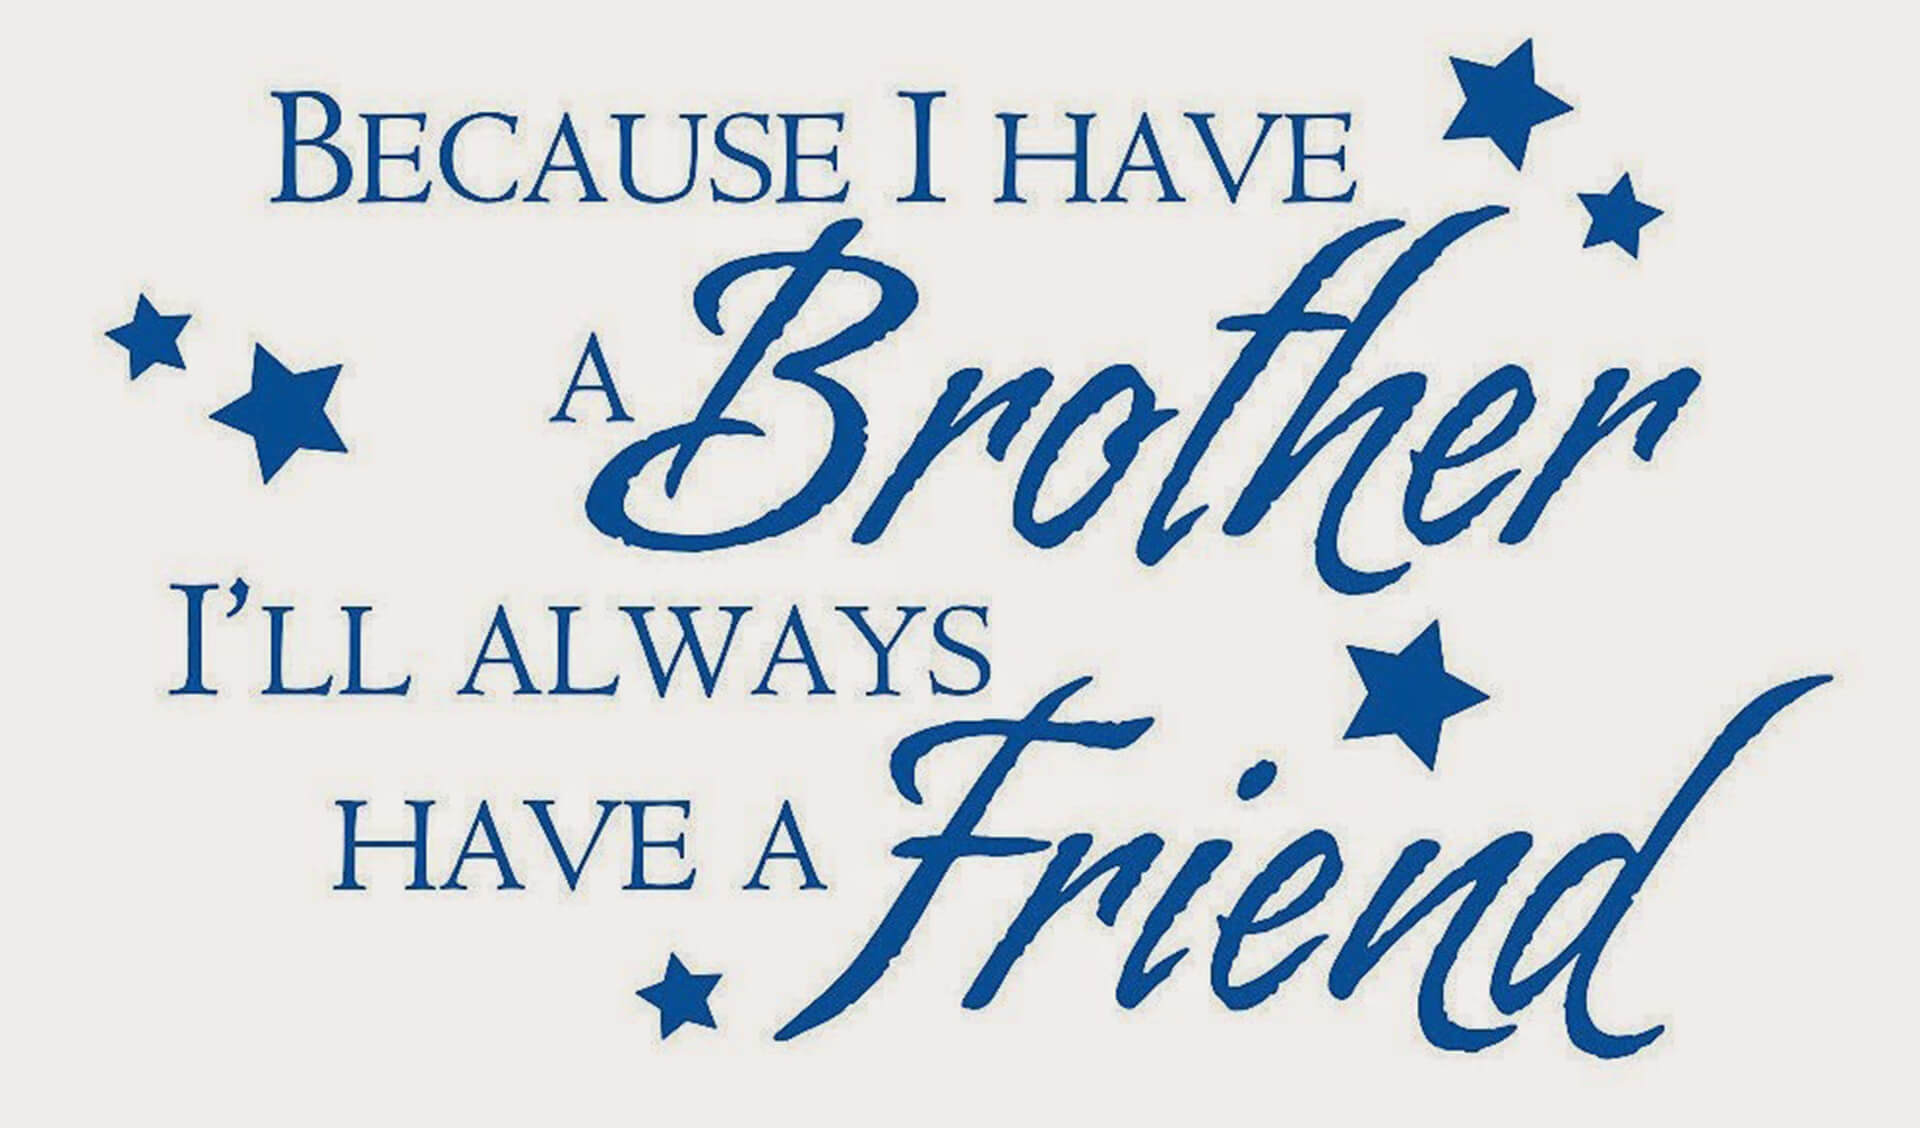 happy brothers day wishes greetings text image